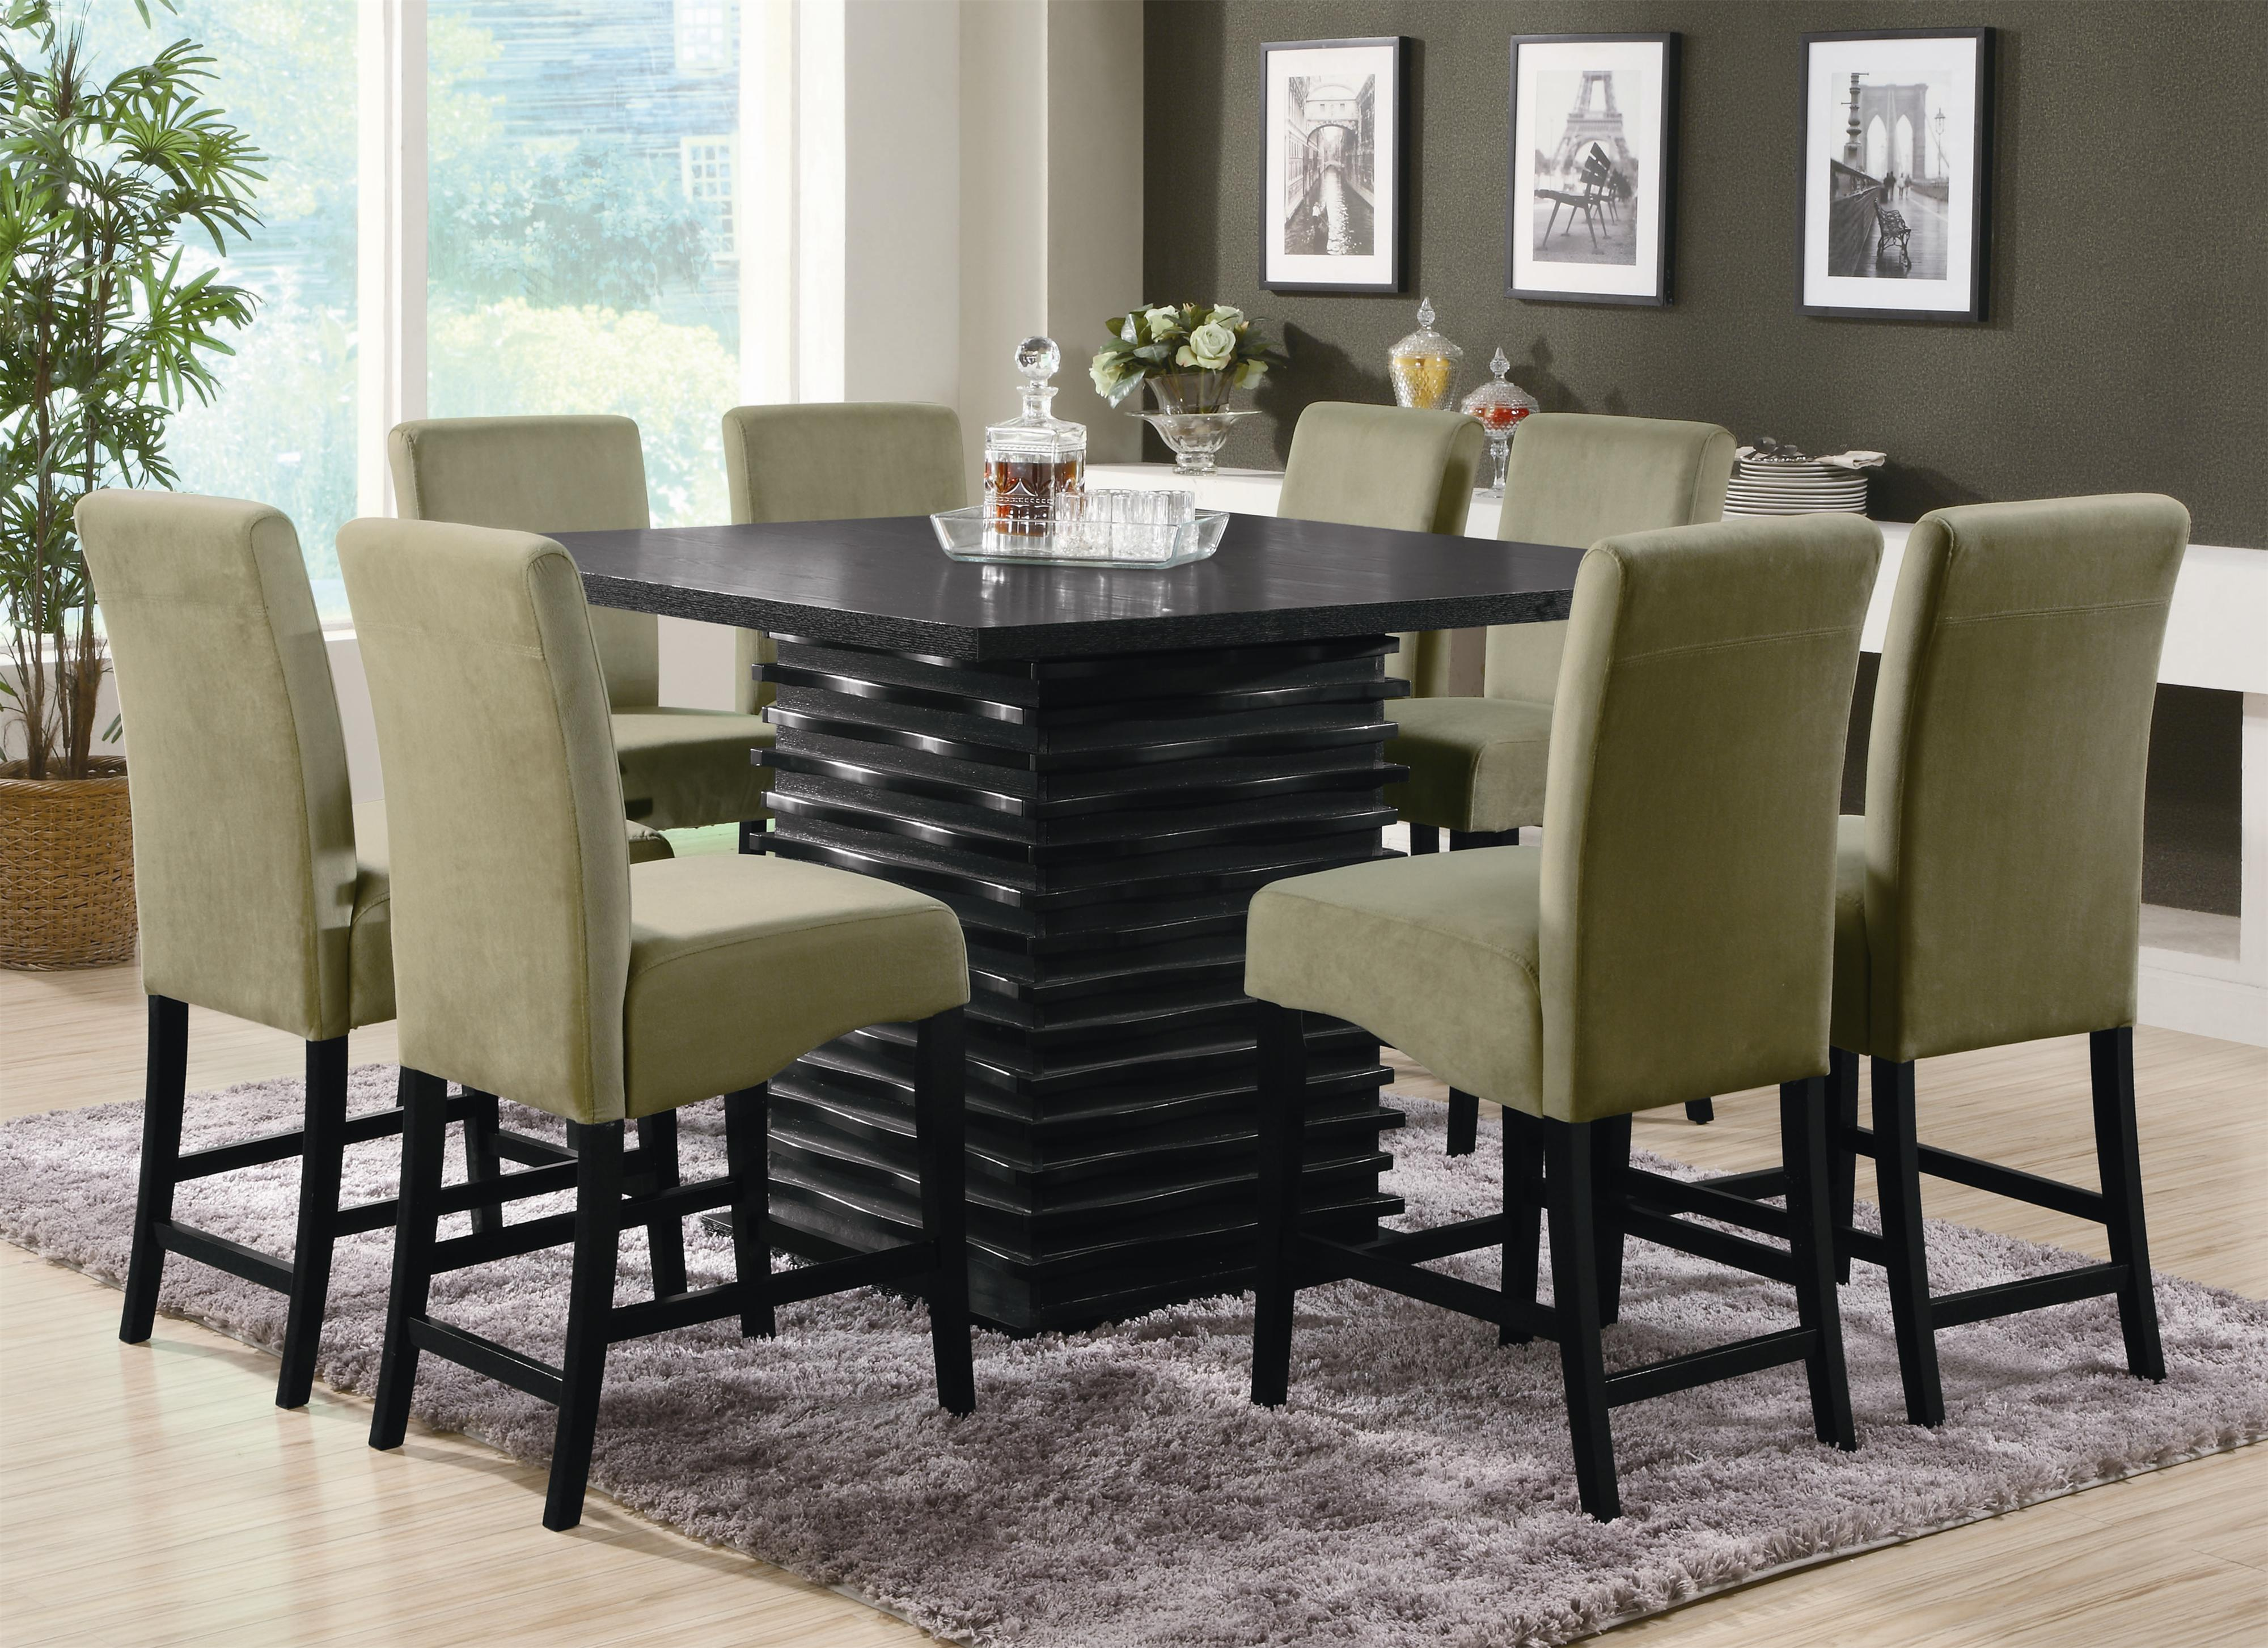 pub style kitchen table sets kitchen table and chairs Pub style kitchen table sets Photo 6